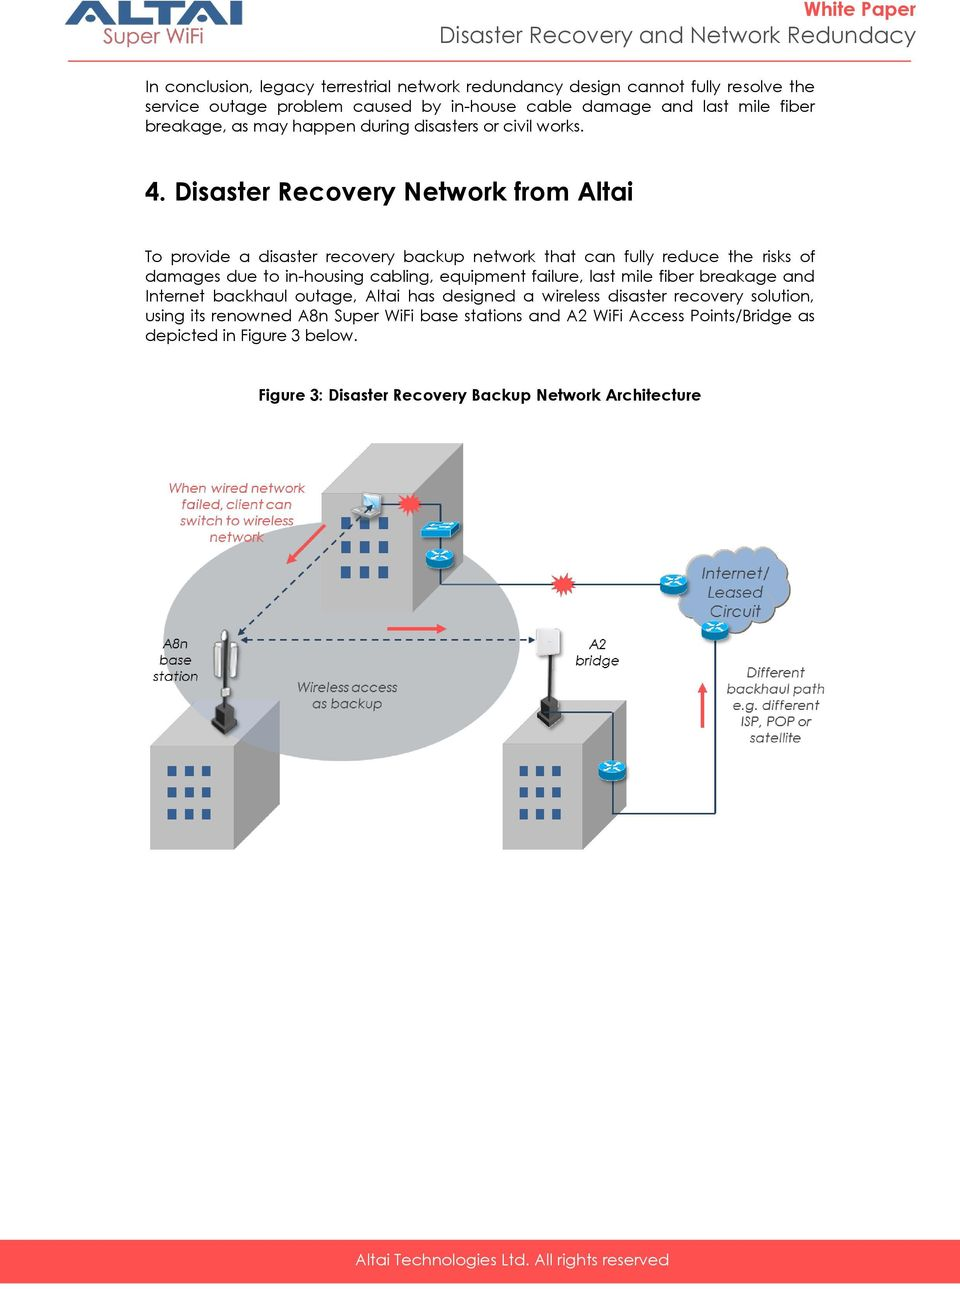 Disaster Recovery Network from Altai To provide a disaster recovery backup network that can fully reduce the risks of damages due to in-housing cabling, equipment